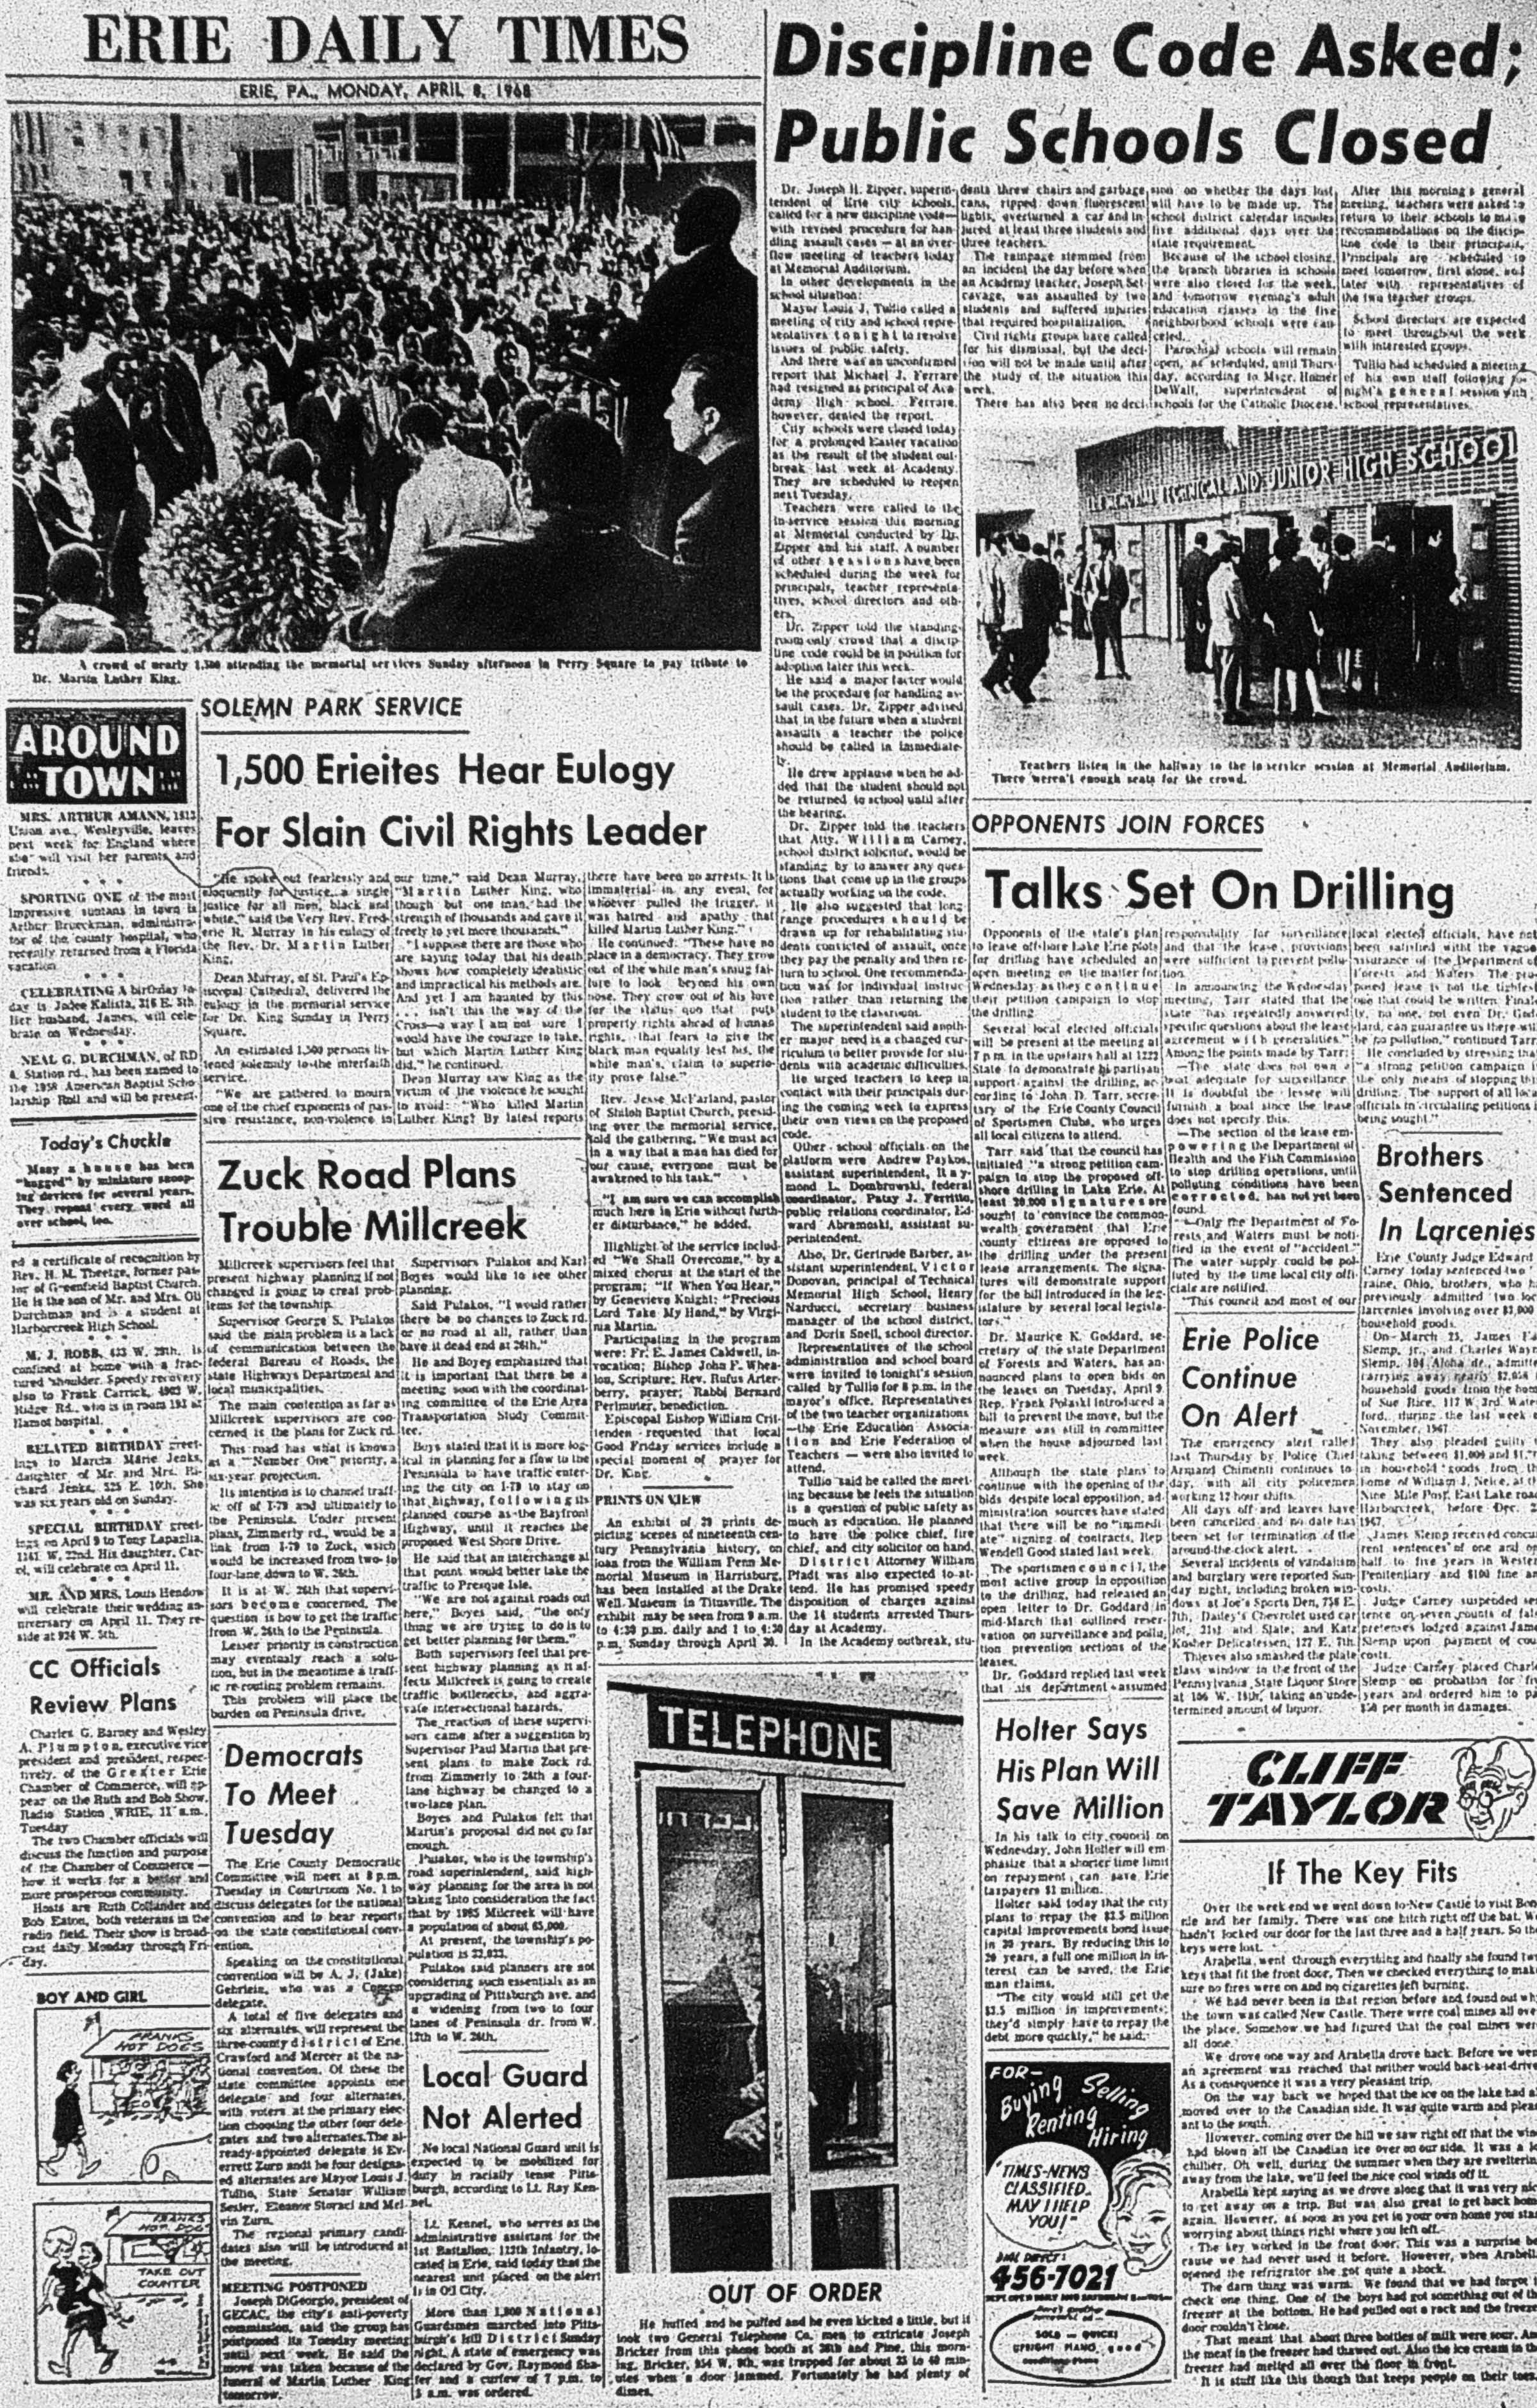 Erie Daily Times, April 8 1968, Perry Square Vigil